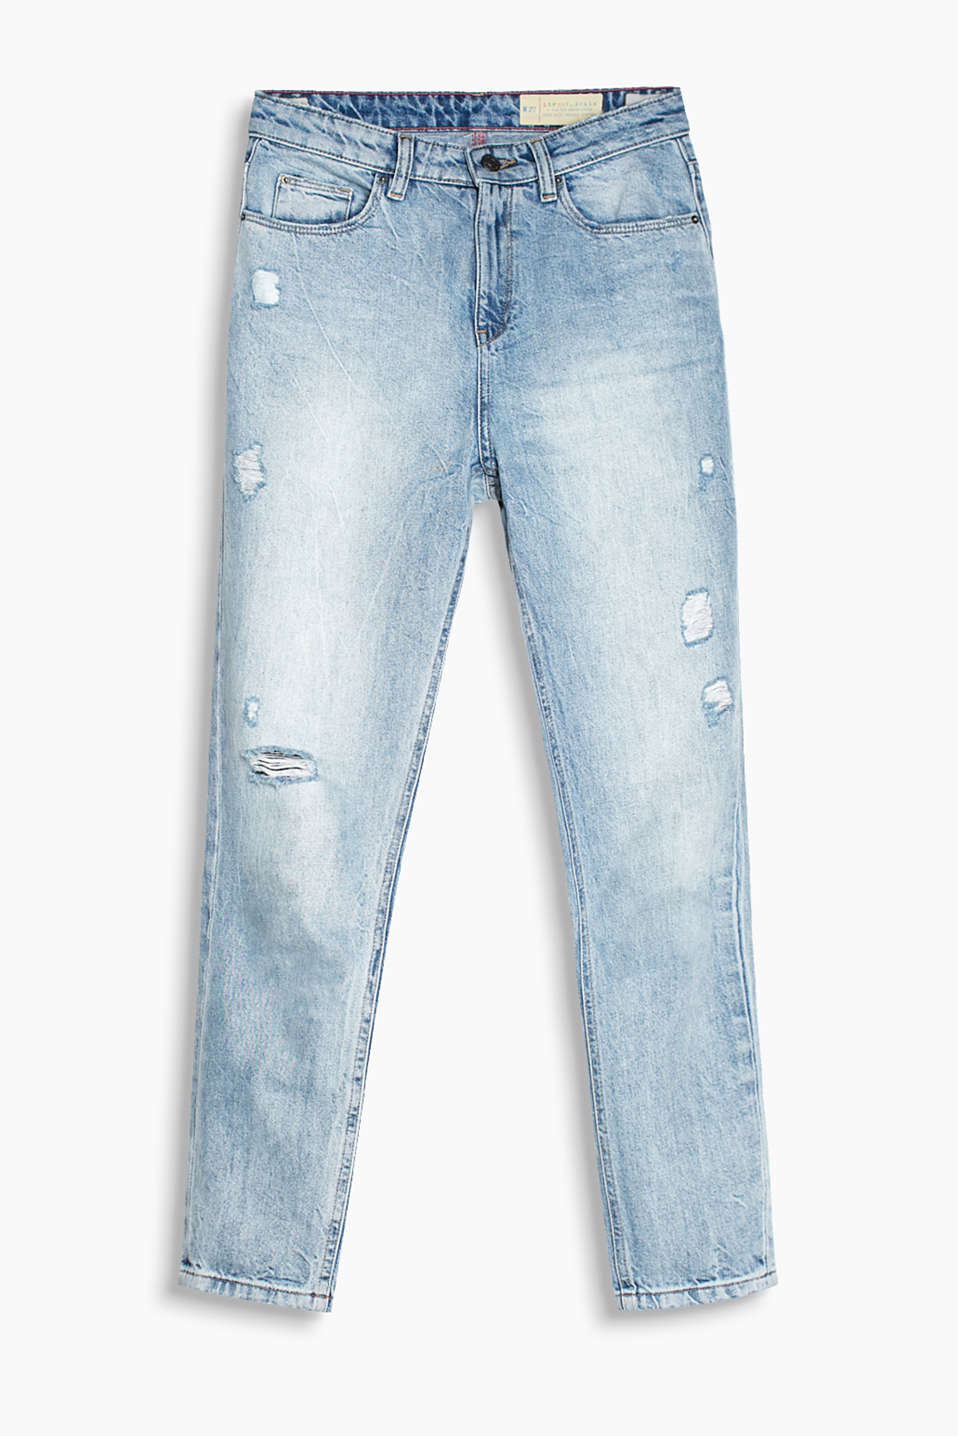 Retro Collection: Stumpede jeans i økologisk bomuld med destroyed-effekter og kulørt, broderet logo